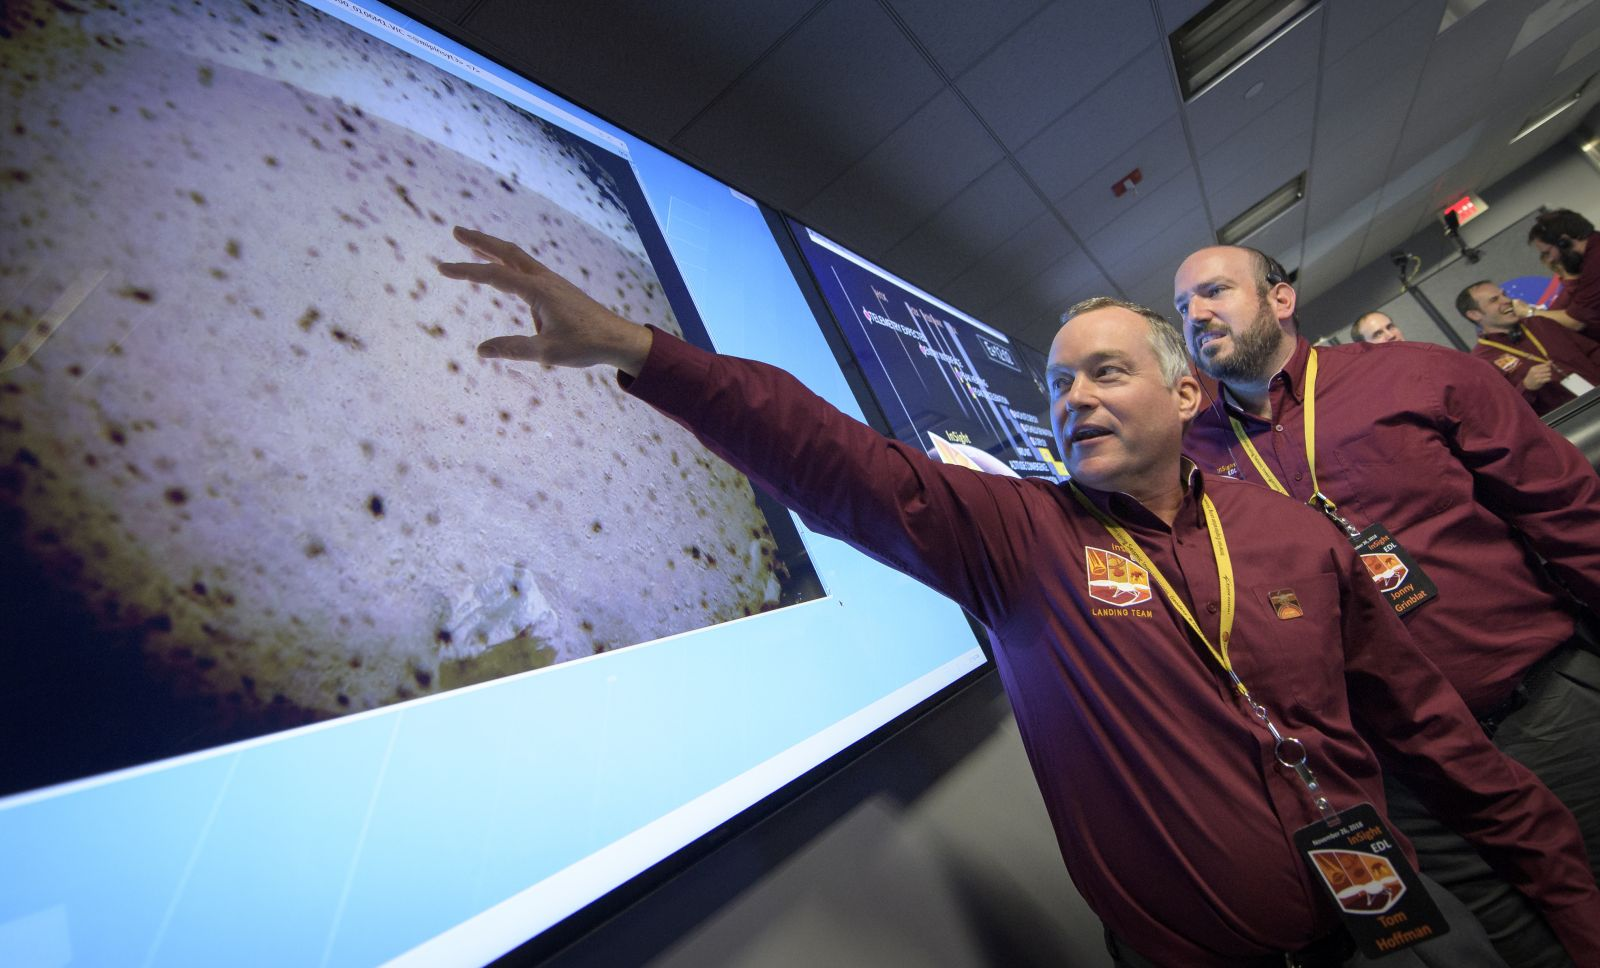 Tom Hoffman, InSight Project Manager, NASA JPL reacts to the first image to be seen from the Mars InSight lander shortly after confirmation of a successful touch down on the surface of Mars, Monday, Nov. 26, 2018 inside the Mission Support Area at NASA's Jet Propulsion Laboratory in Pasadena, California. Photo & Caption Credit: Bill Ingalls / NASA